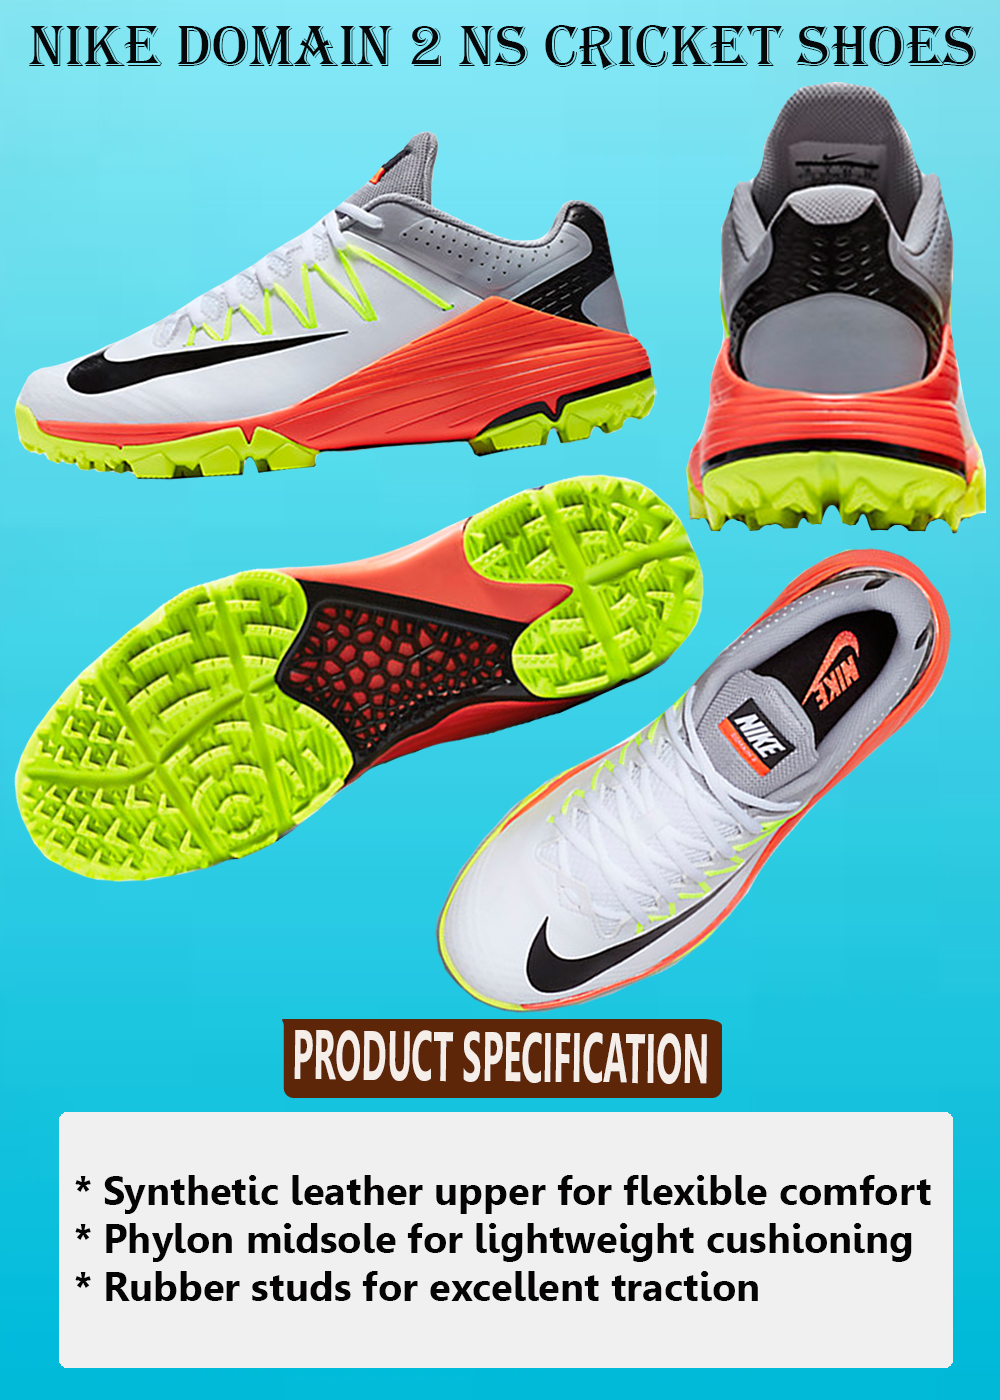 NIKE DOMAIN 2 NS CRICKET SHOES_3